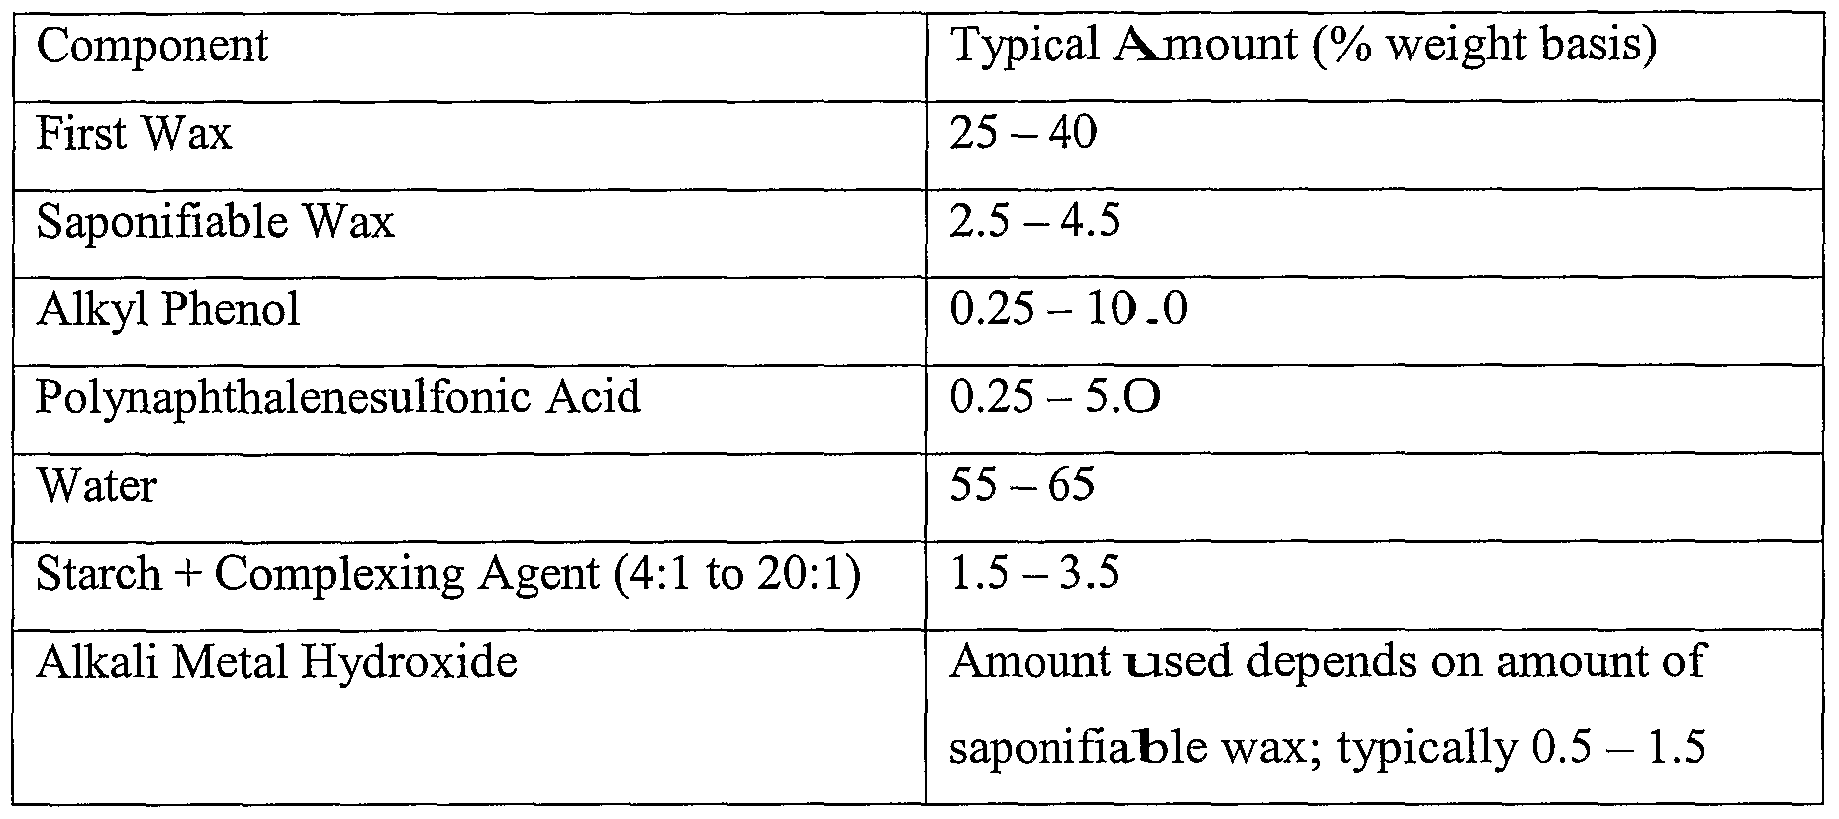 Dow Surfactants Alternatives to Alkyl Phenol Ethoxylate